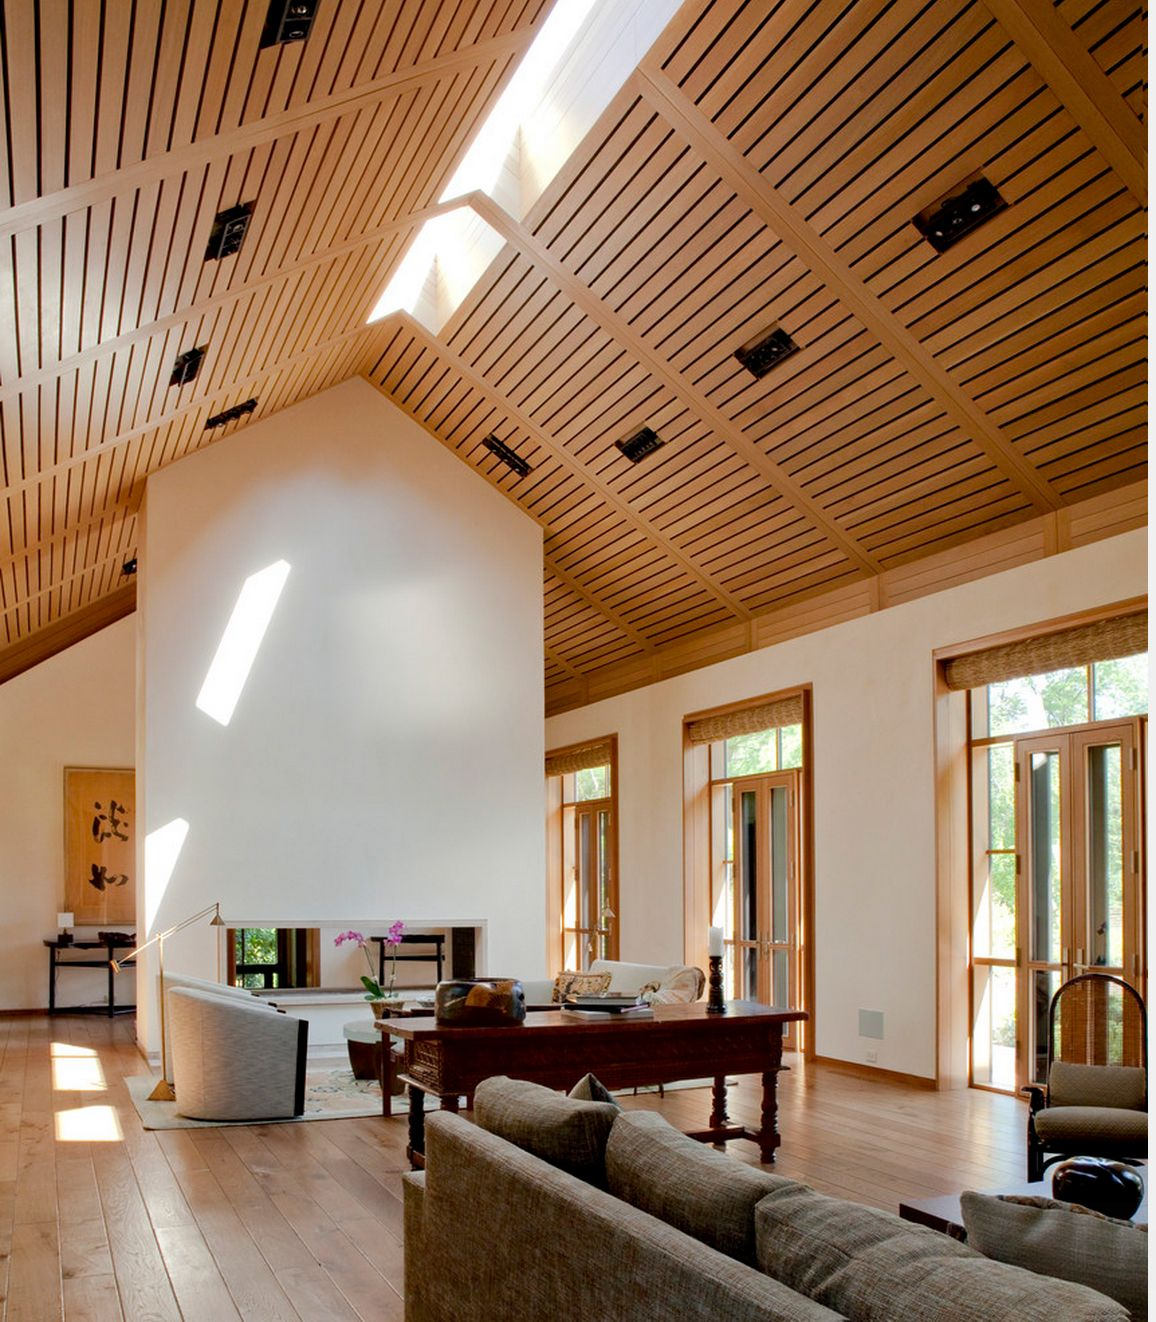 20 Cool Basement Ceiling Ideas: A Modern Take On A Vaulted Ceiling! Very Cool. From Houzz